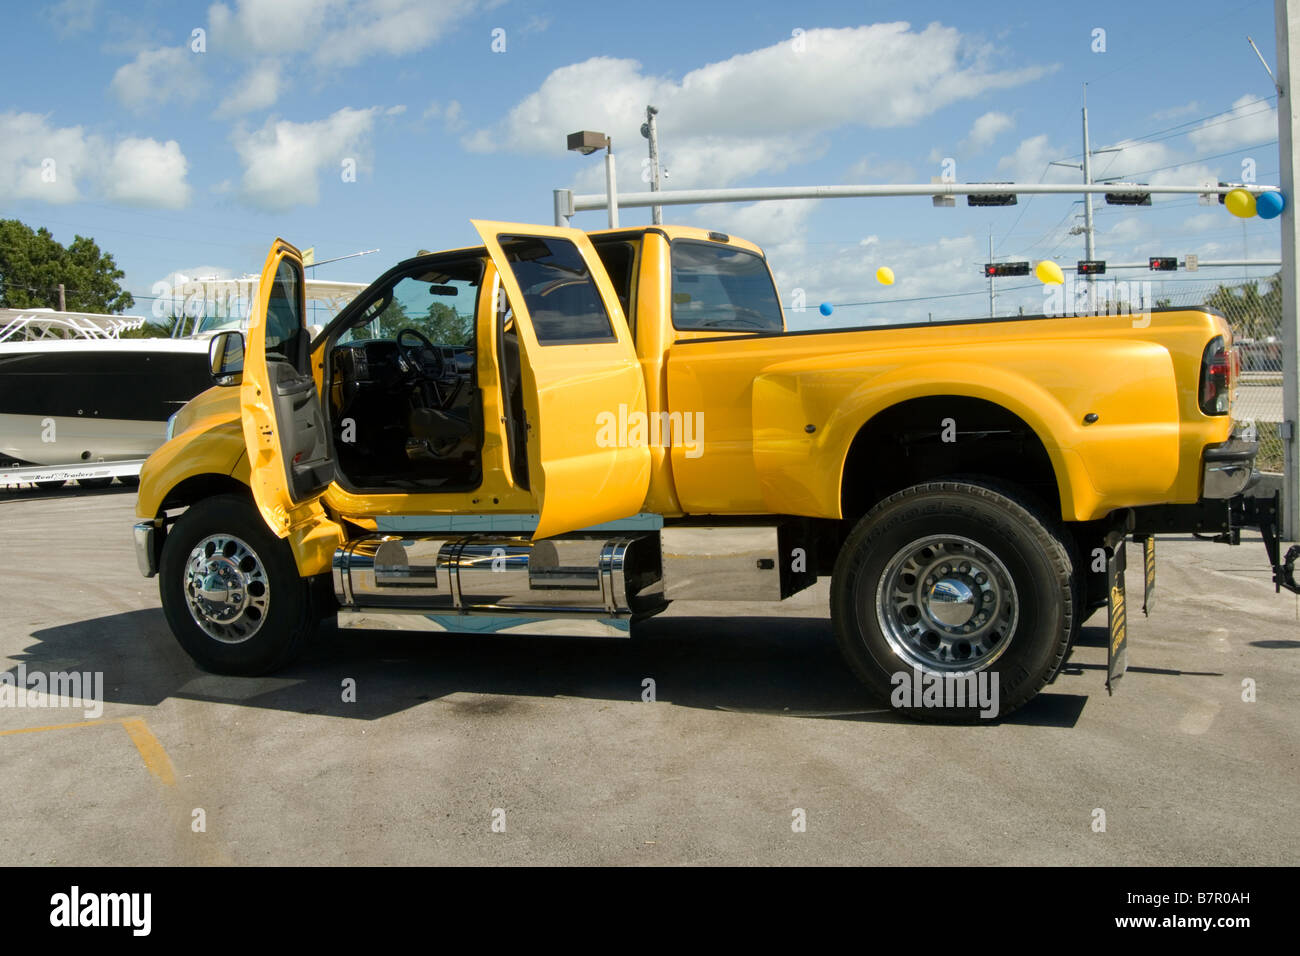 big yellow american pick up truck stock photo royalty free image 22018153 alamy. Black Bedroom Furniture Sets. Home Design Ideas